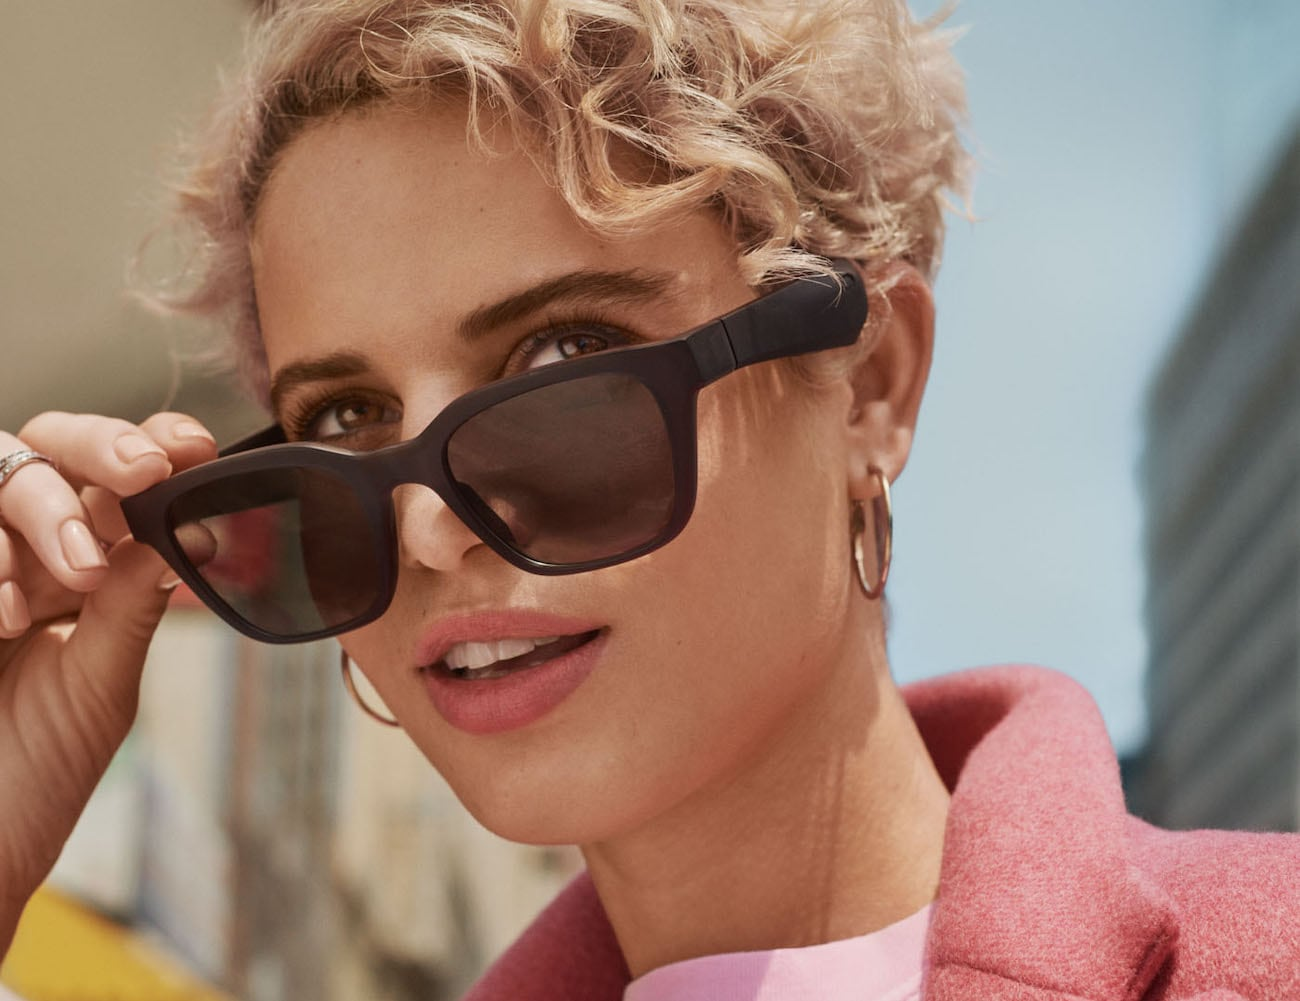 Bose Frames Rondo Audio Sunglasses have mini speakers near your ears